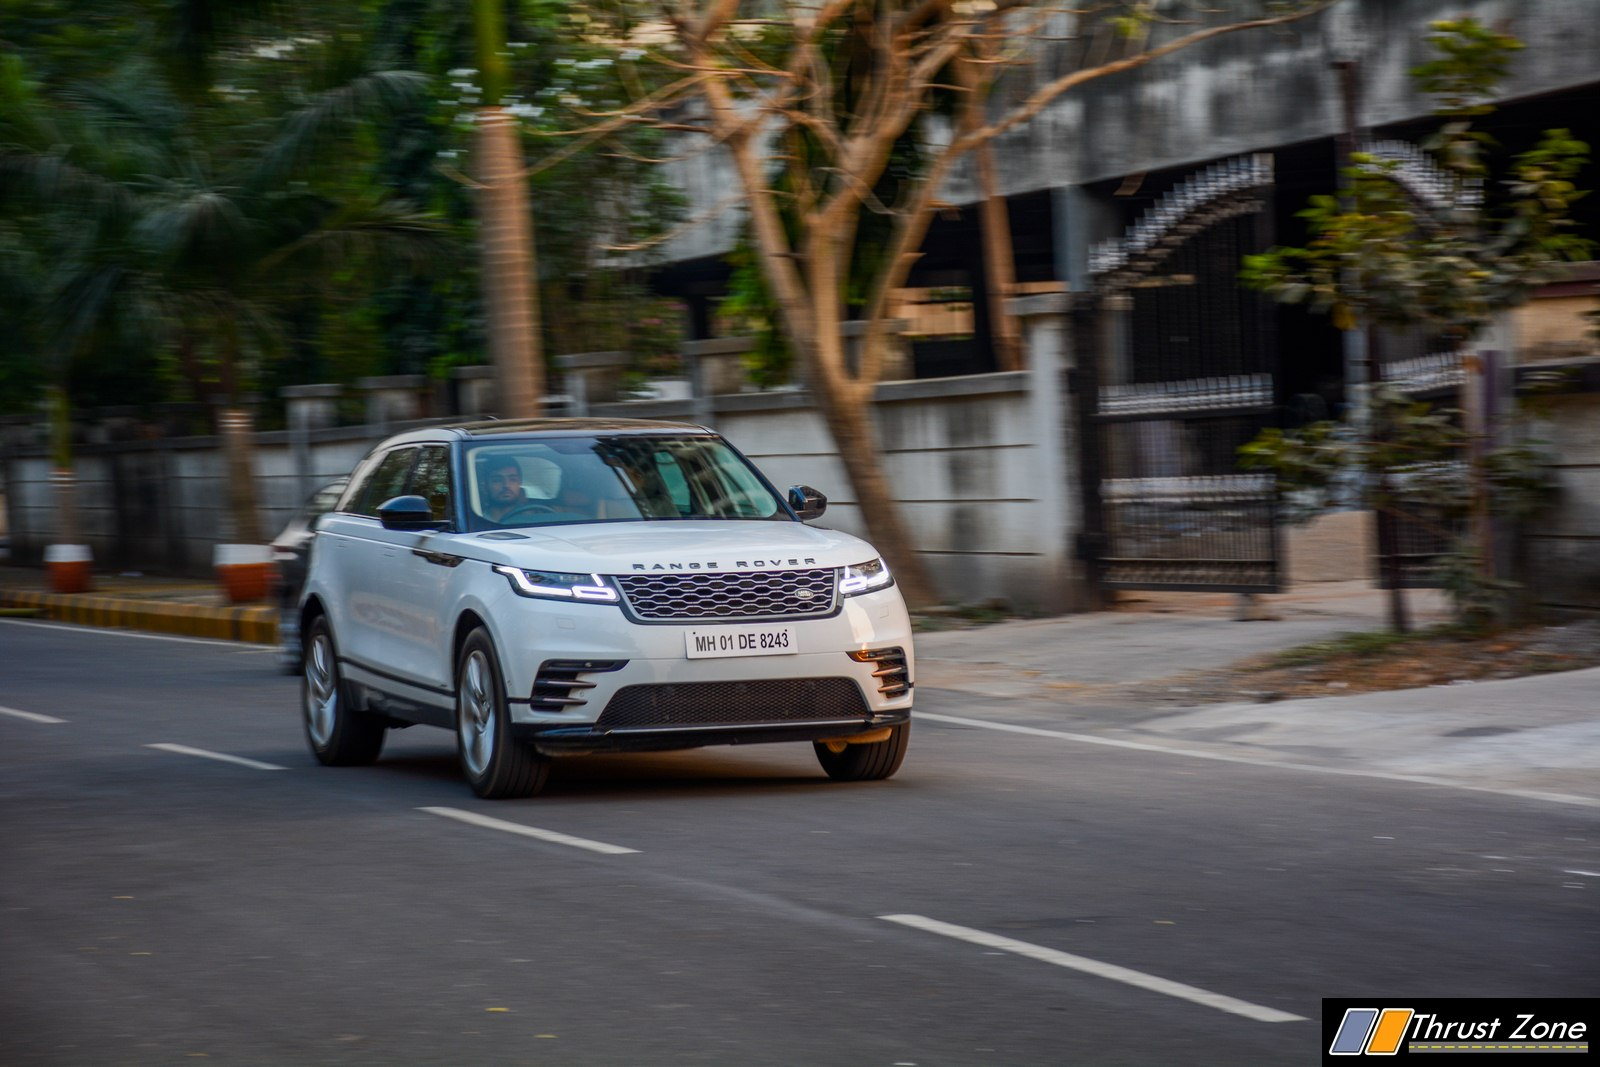 Range-Rover-Velar-RDynamic-Petrol-India-Review-11